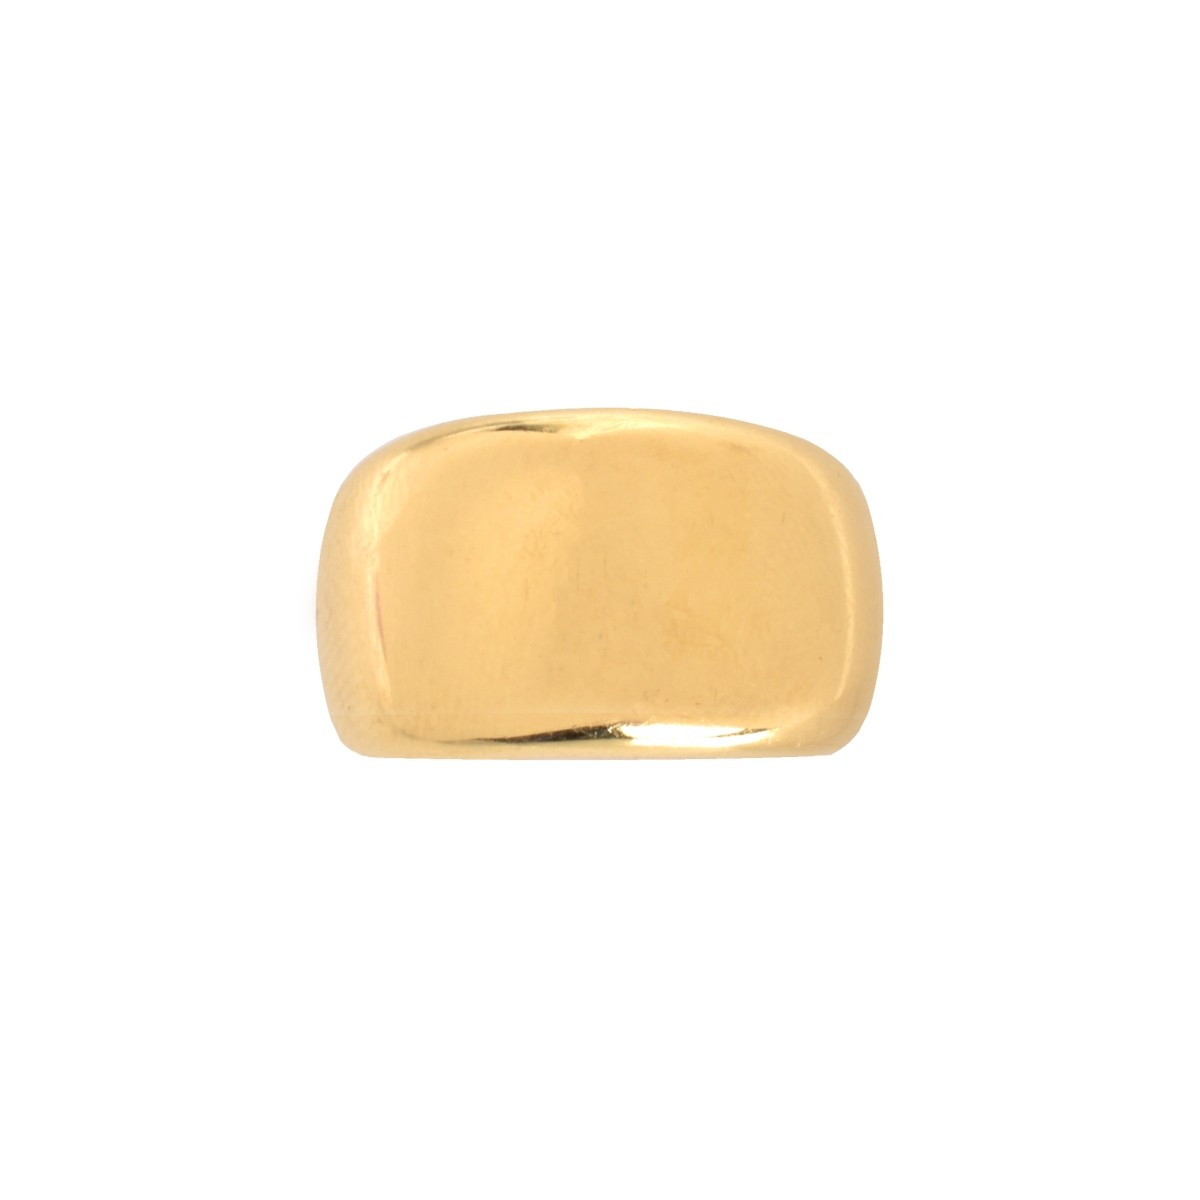 Cartier 18K Ring / Band